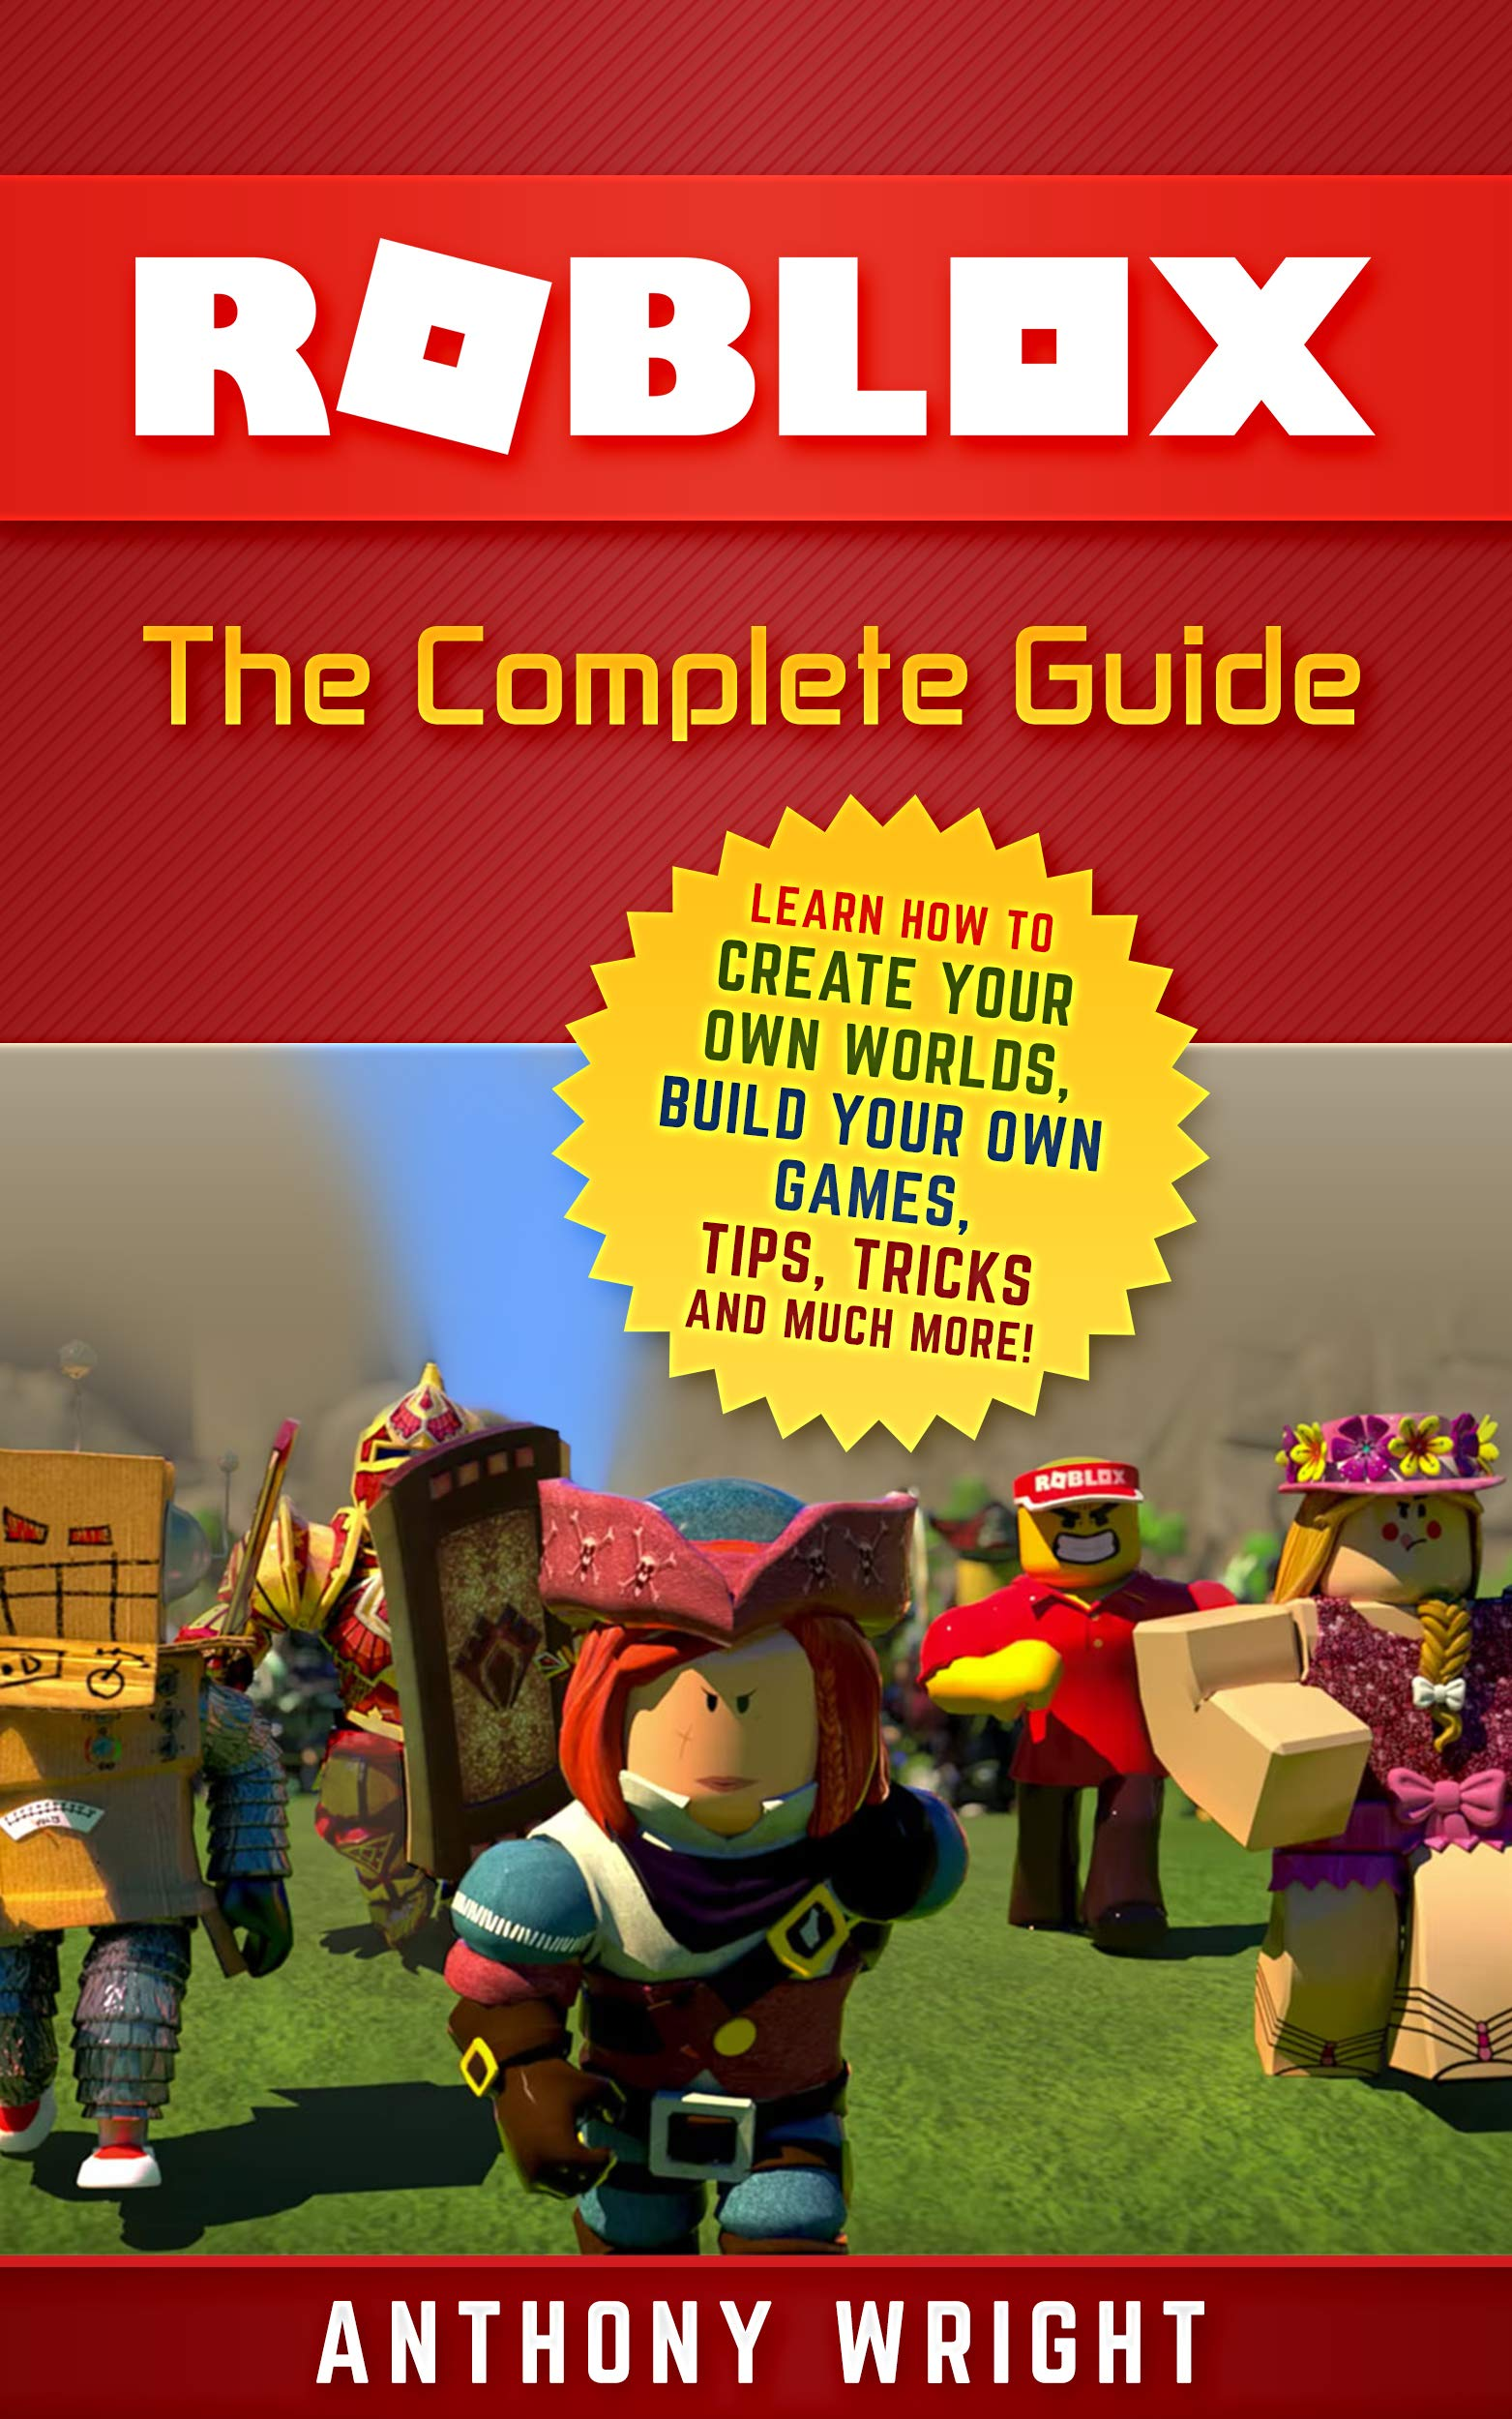 ROBLOX: The Complete Guide - Learn How to Create Your Own Worlds, Build Your Own Games, Tips, Tricks and Much More! (An Unofficial ROBLOX Game Guide) por Anthony Wright